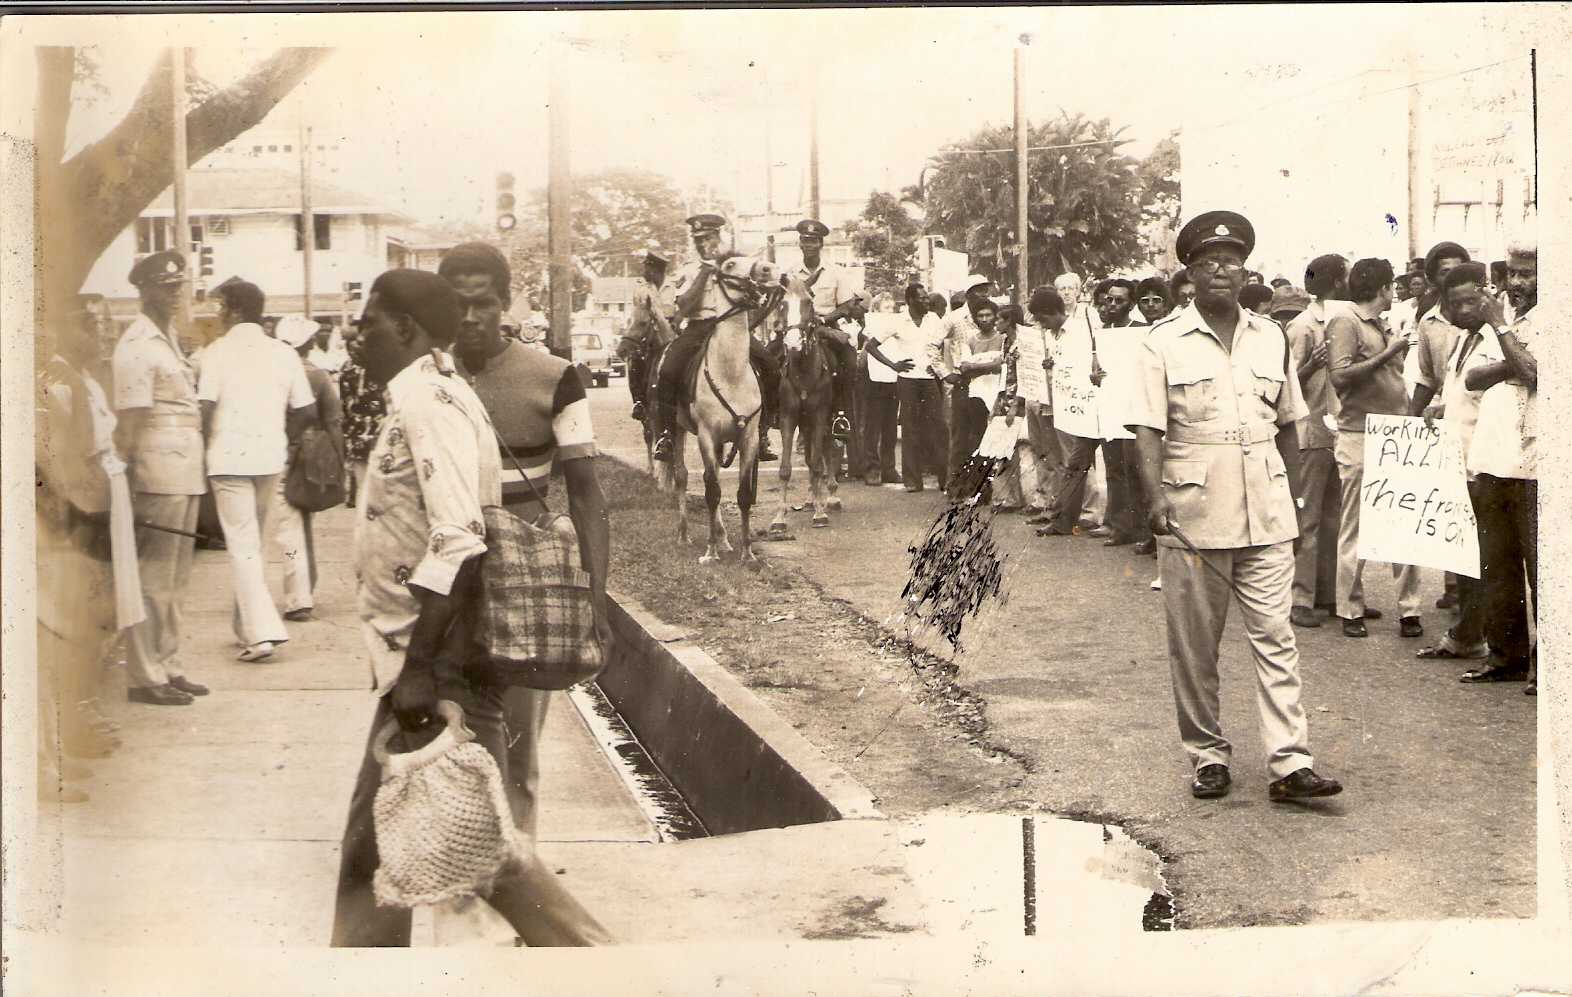 """wpa in guyana essay This book presents a moving and insightful portrait of guyanese scholar and   robert """"bobby"""" moore's essay recalls his encounters with rodney during   intense for rodney and other members of the working people's alliance (wpa),  as."""